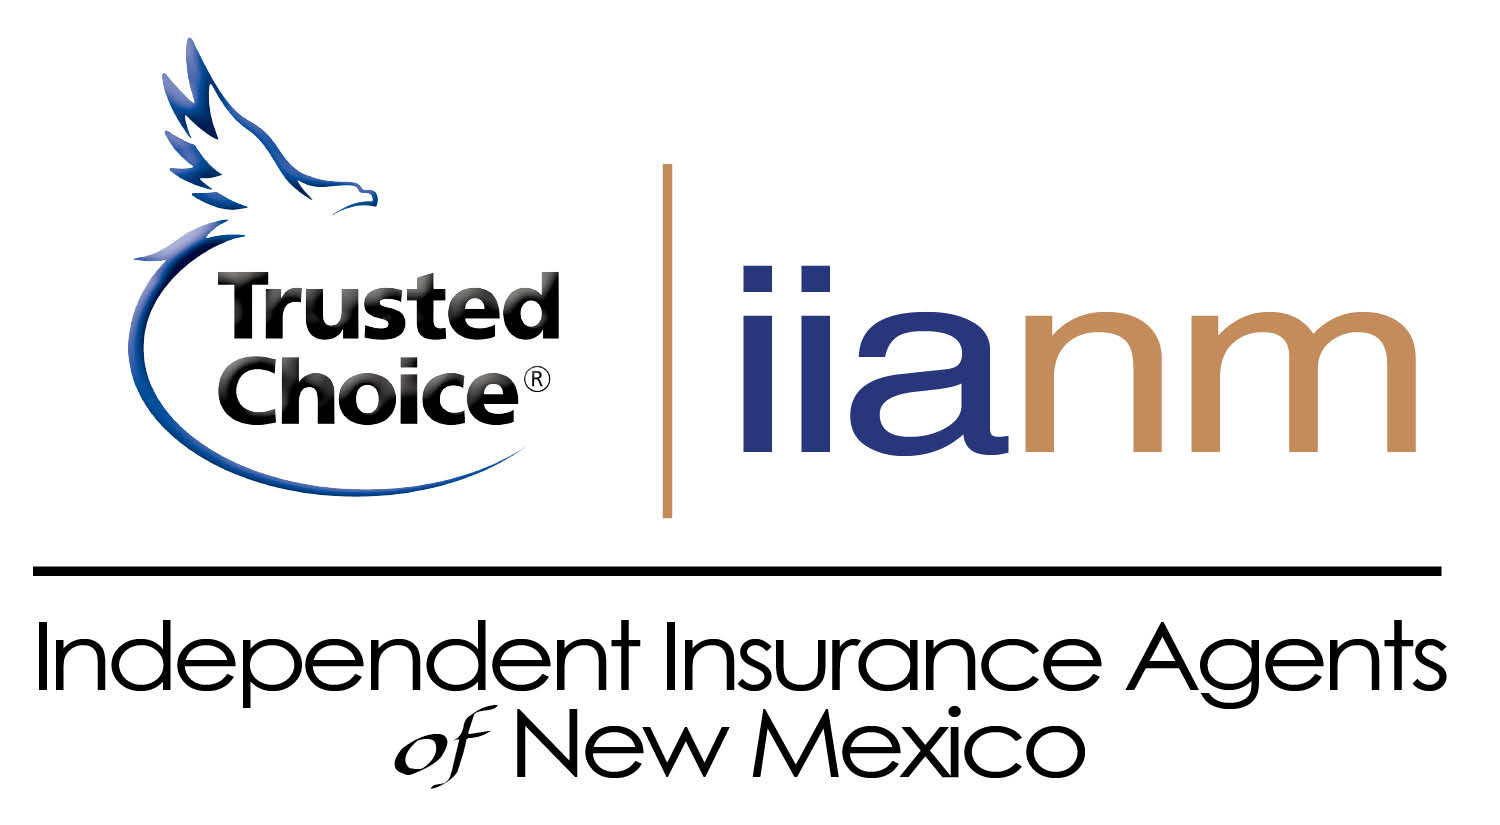 Independent Insurance Agents of New Mexico